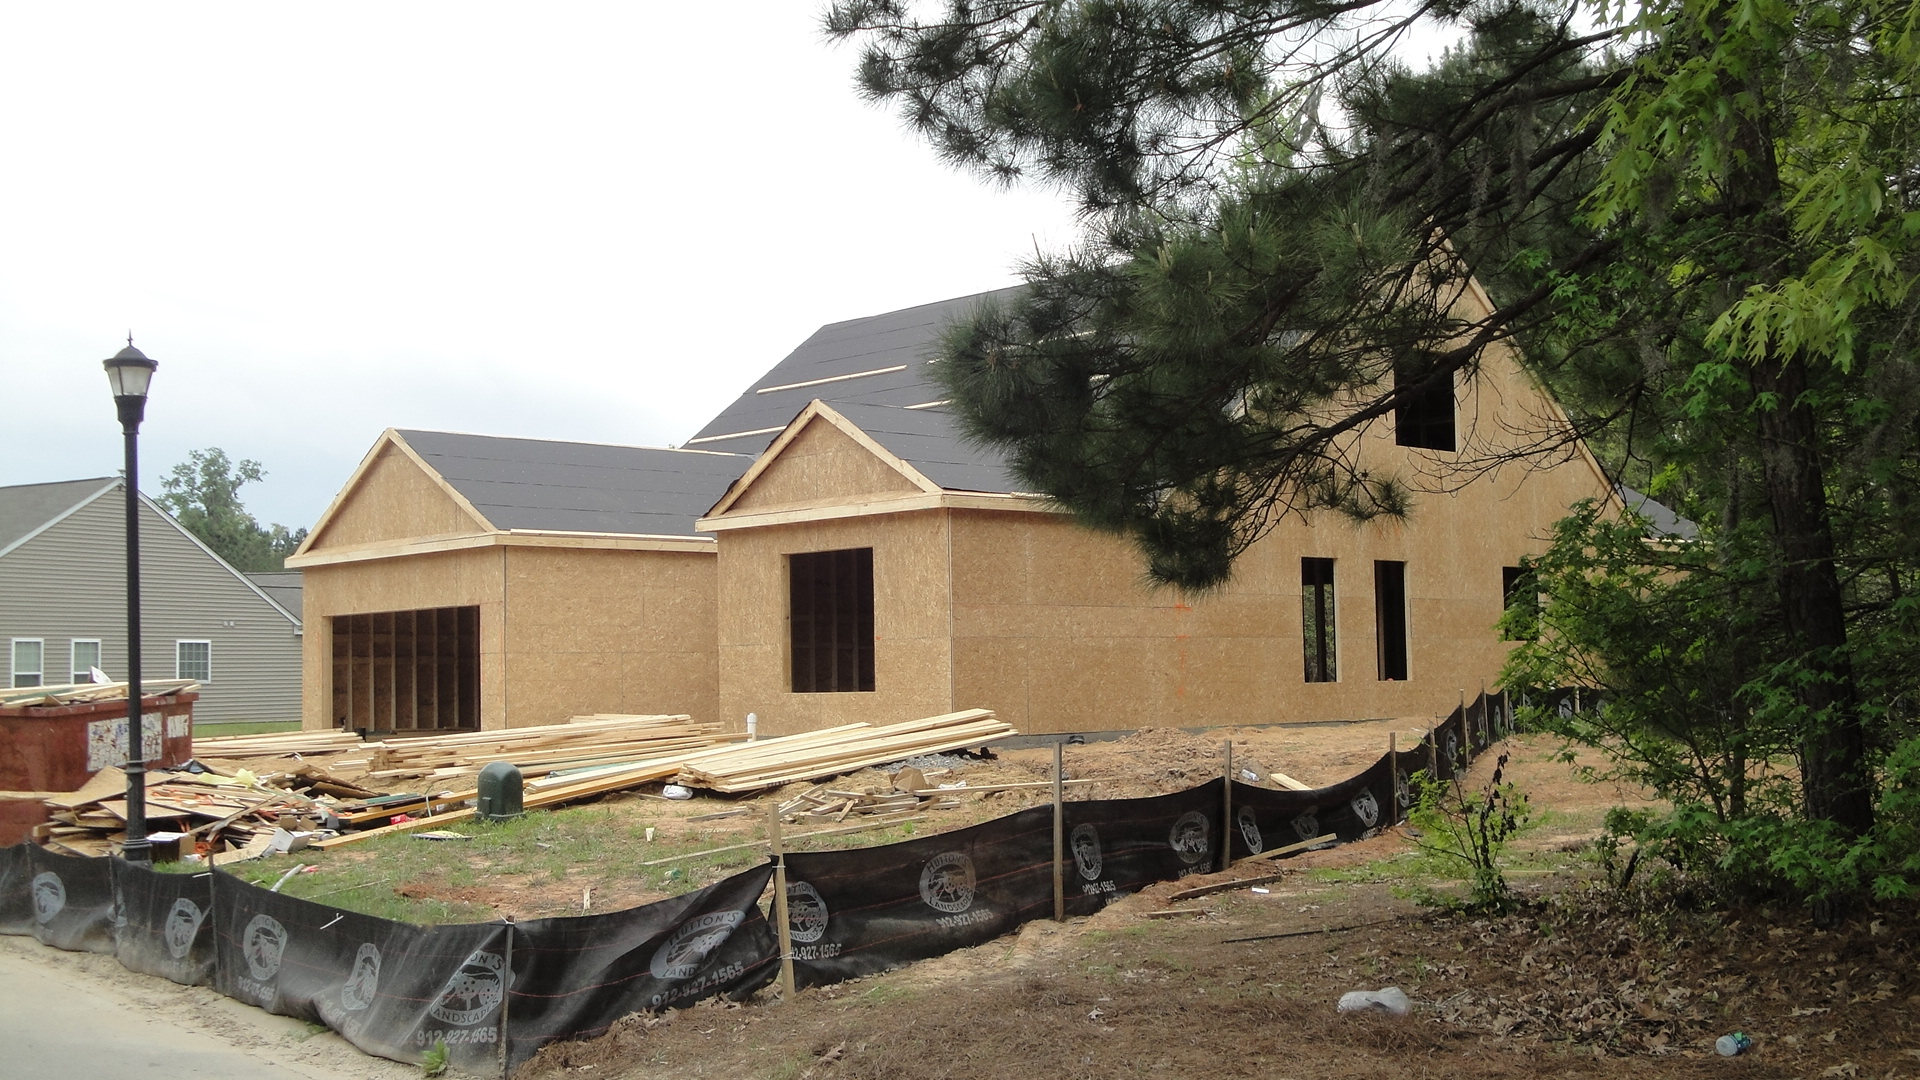 New Construction Homes in Bluffton, South Carolina